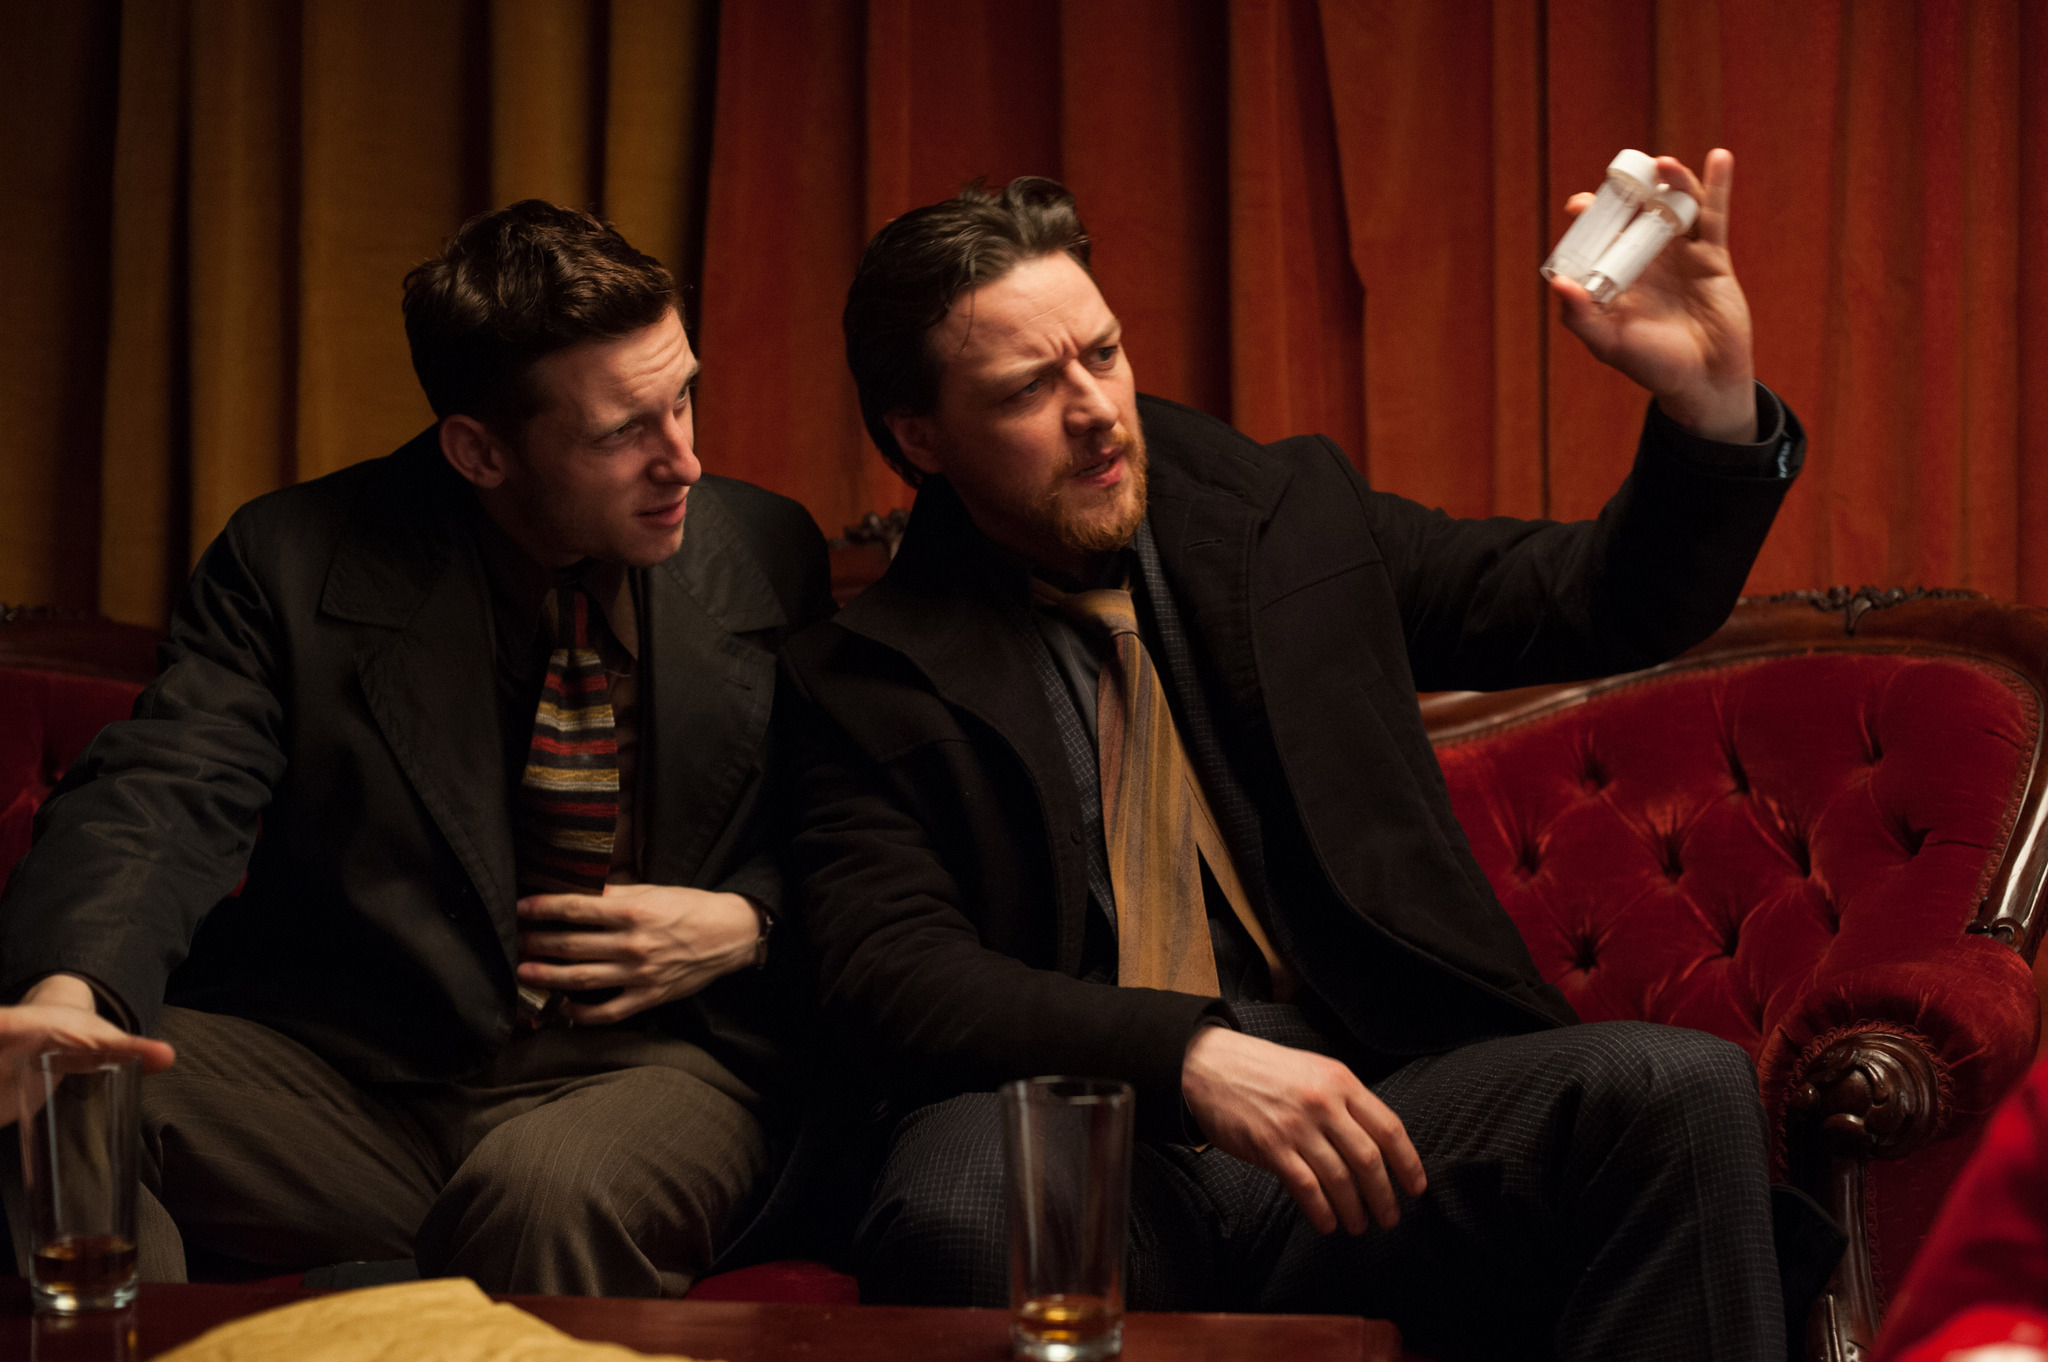 Jamie Bell and James McAvoy in Filth (2013)